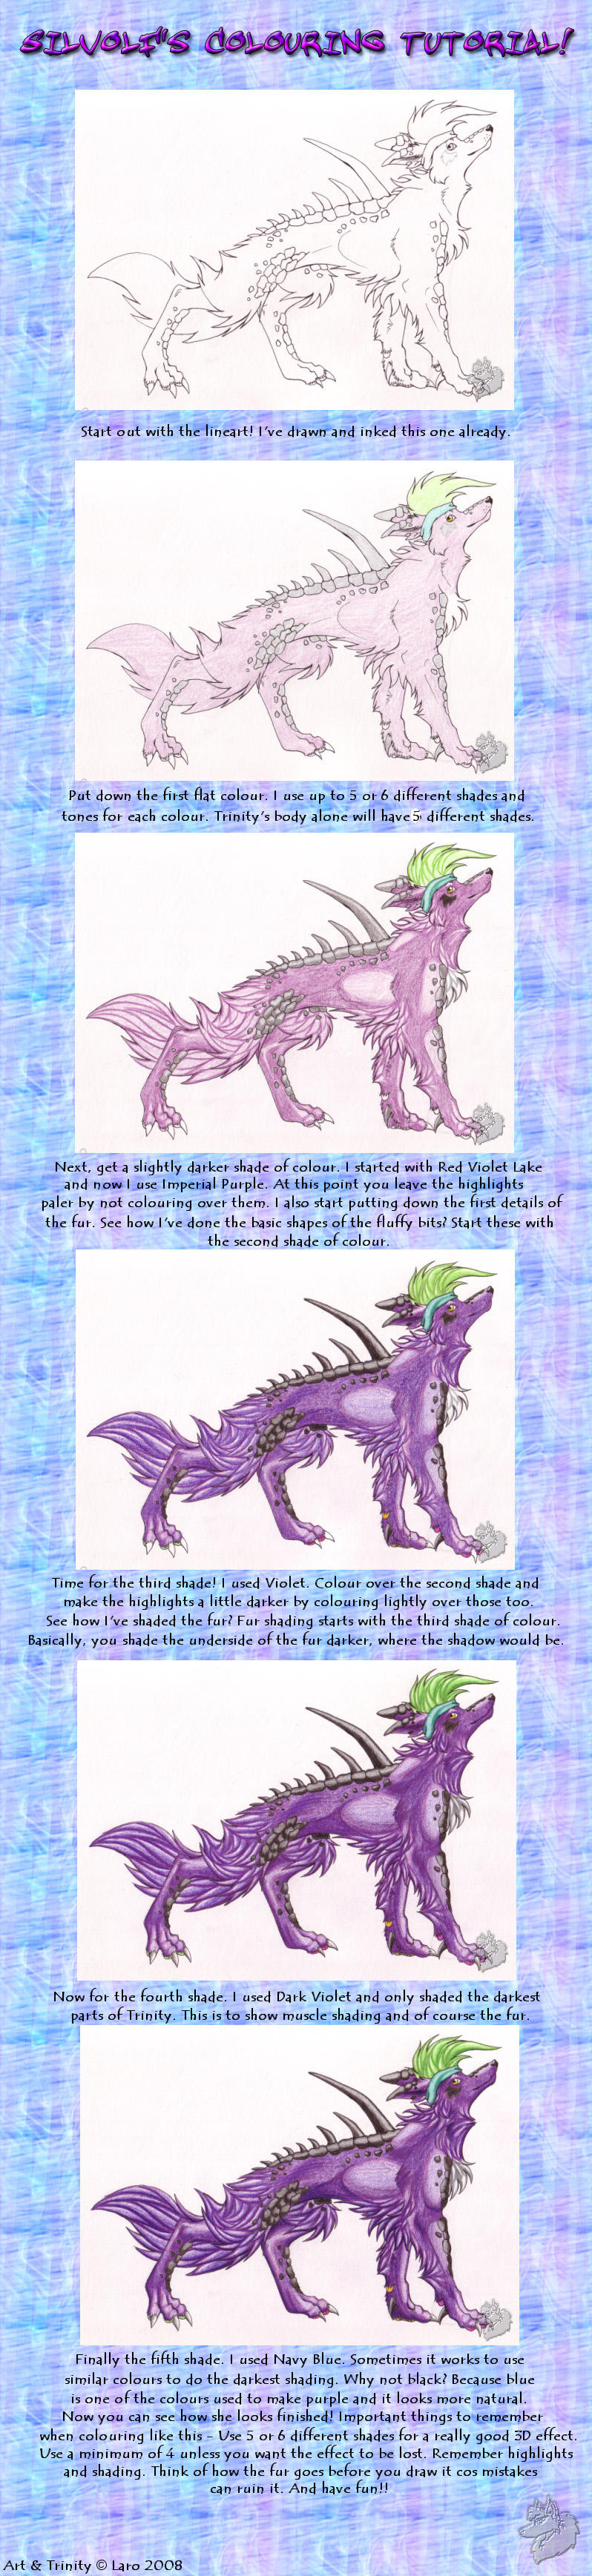 Traditional Colouring Tutorial by Silvolf